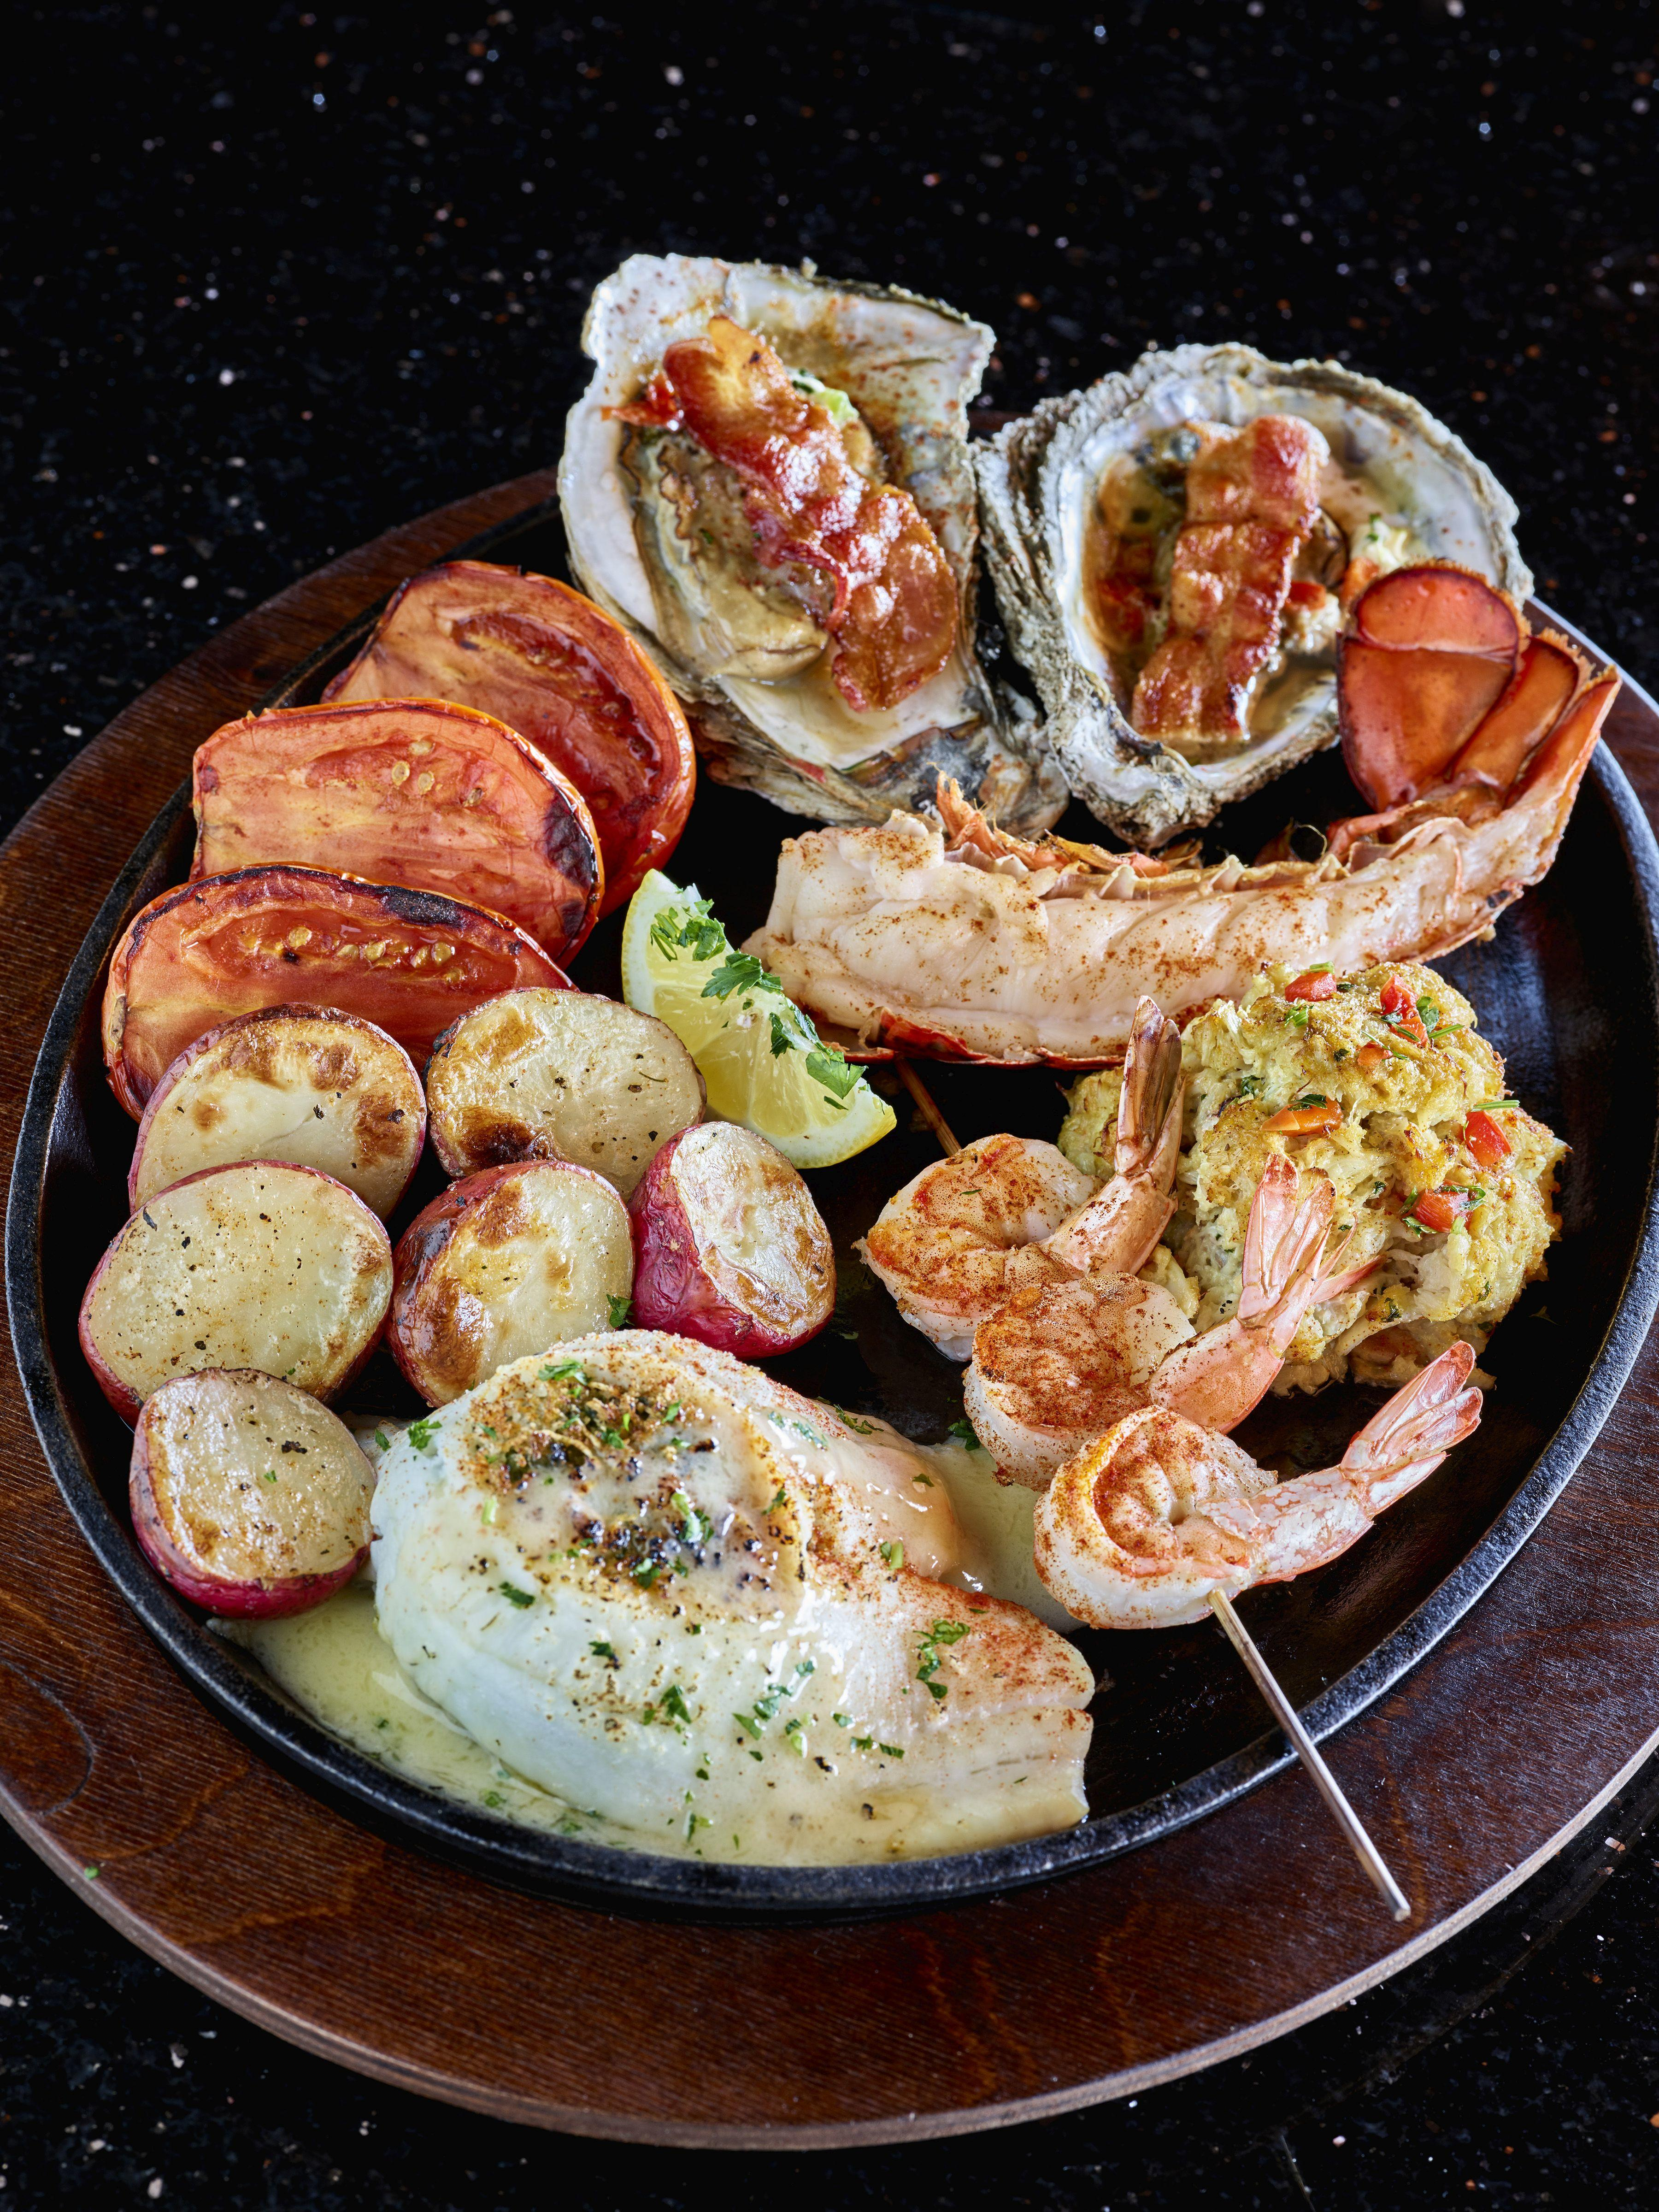 Big fish seafood bistro coupons near me in dearborn 8coupons for Fish and shrimp near me